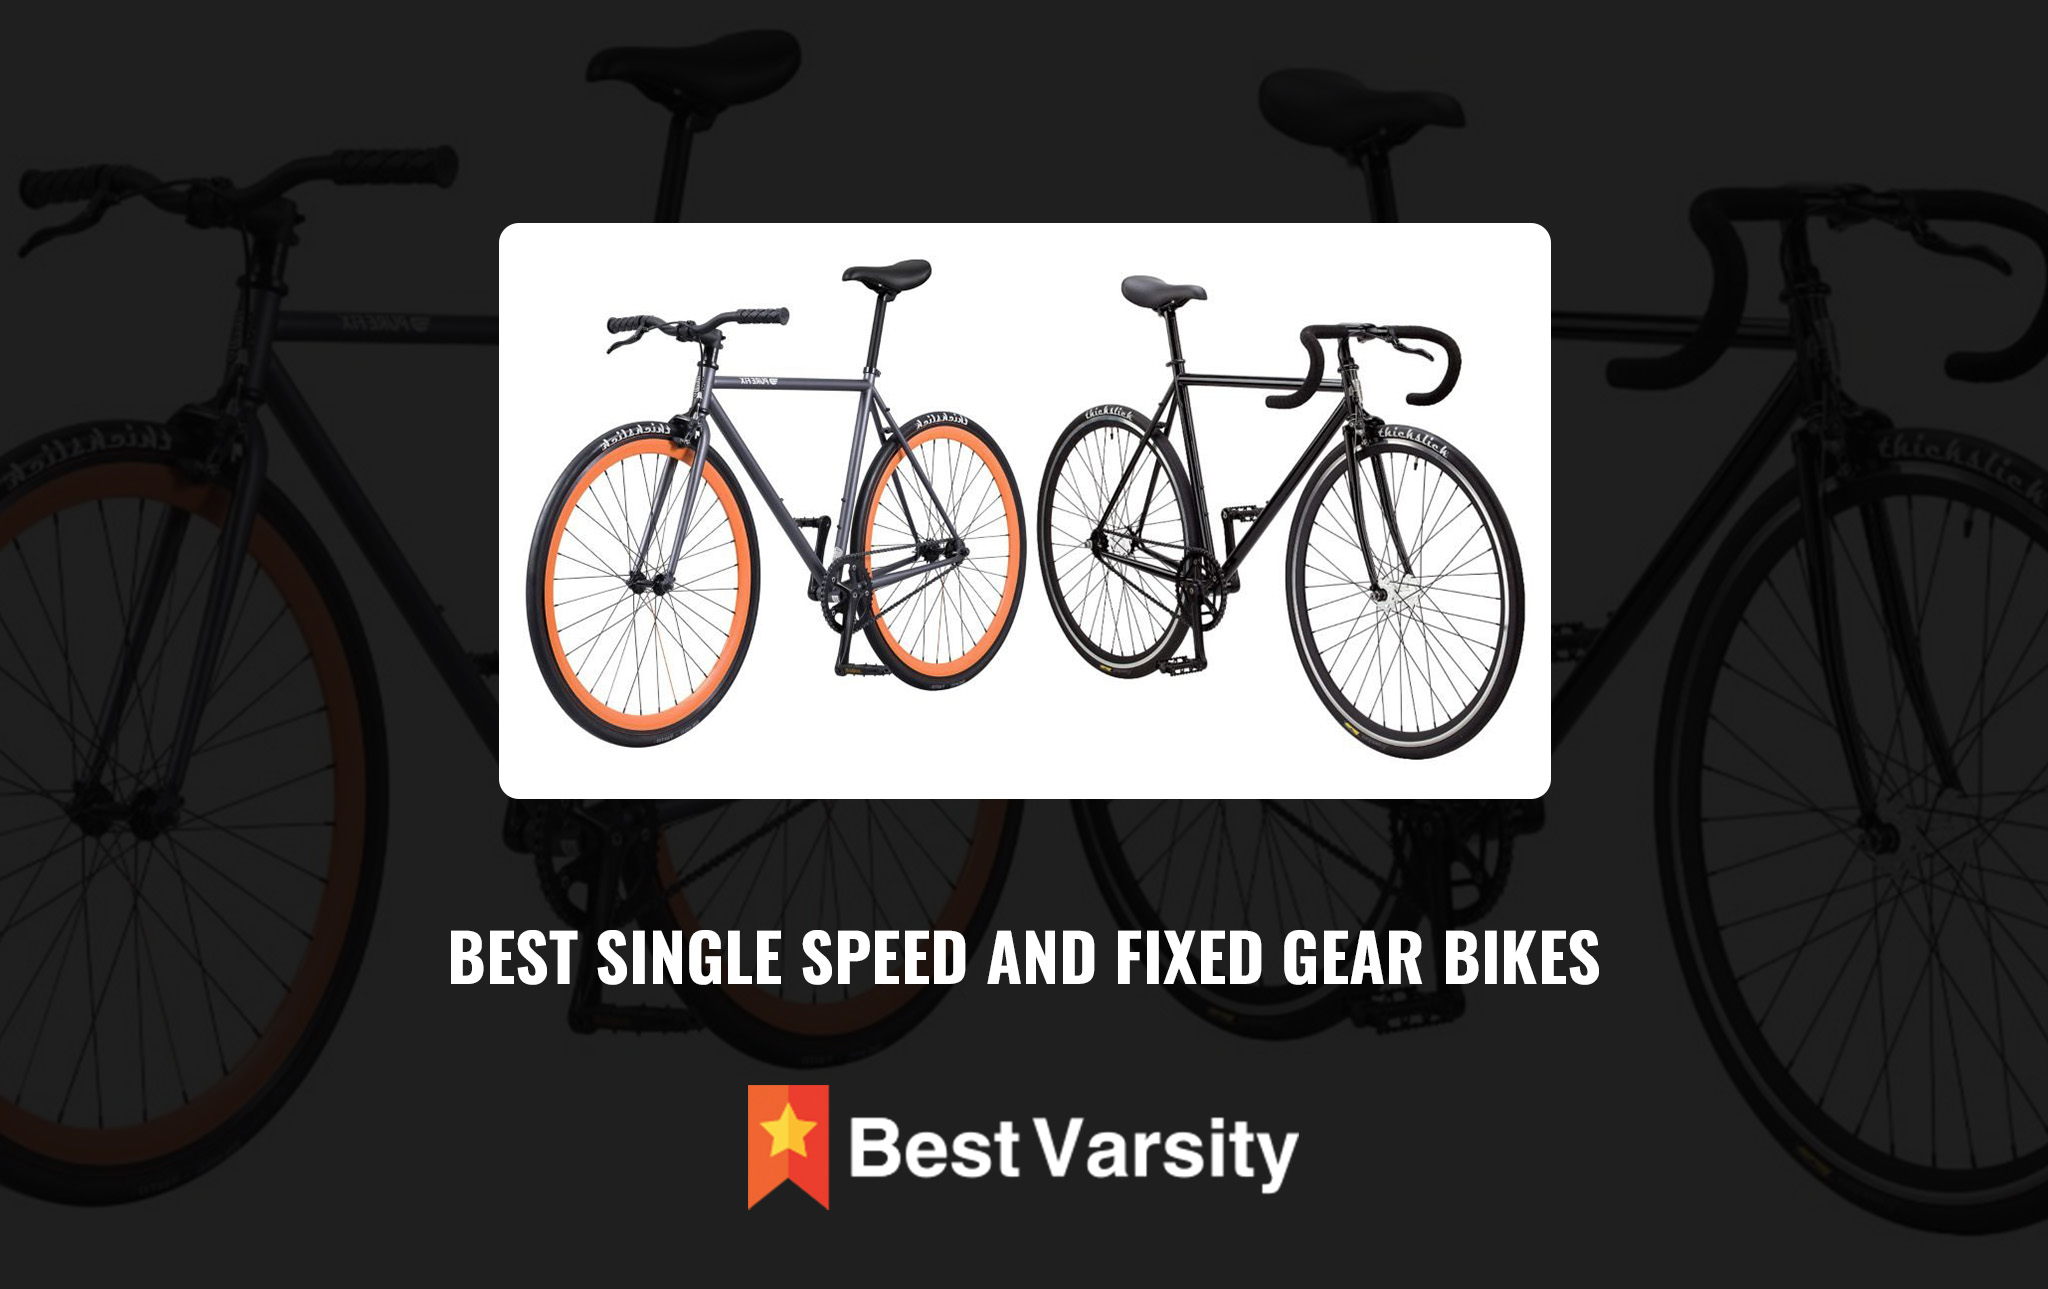 Best Single Speed and Fixed Gear Bikes